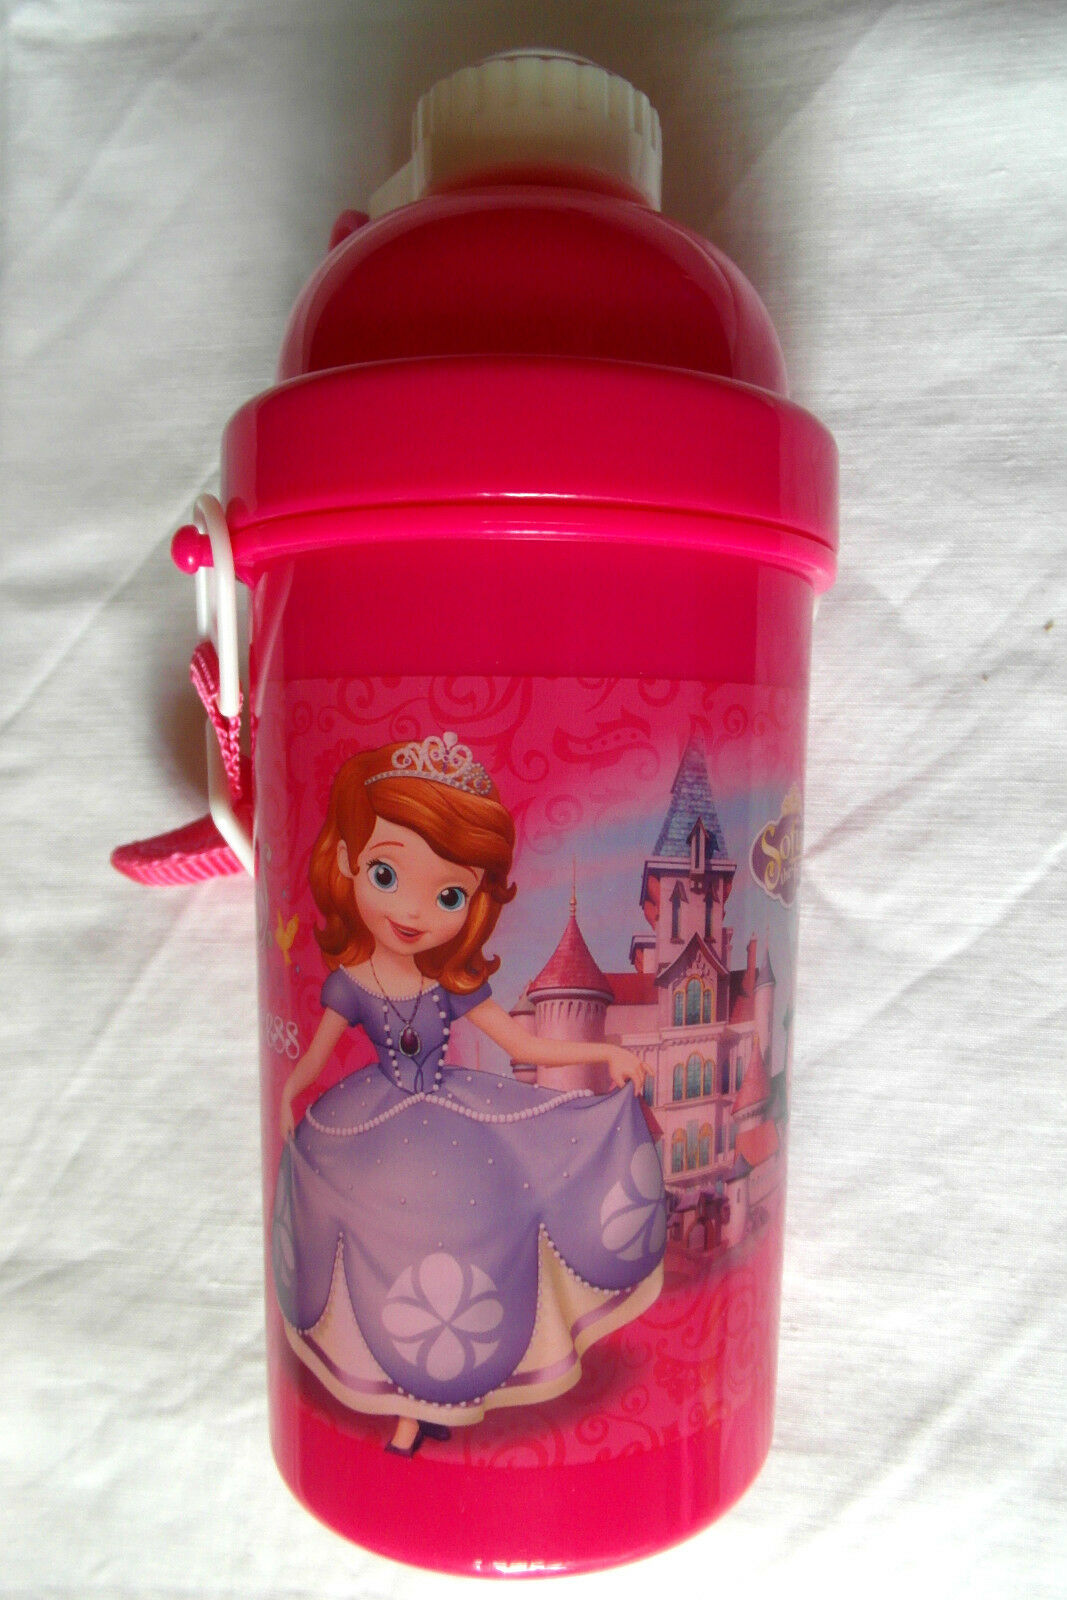 Disney Sofia the First Pop-Up Water Bottle 500ml